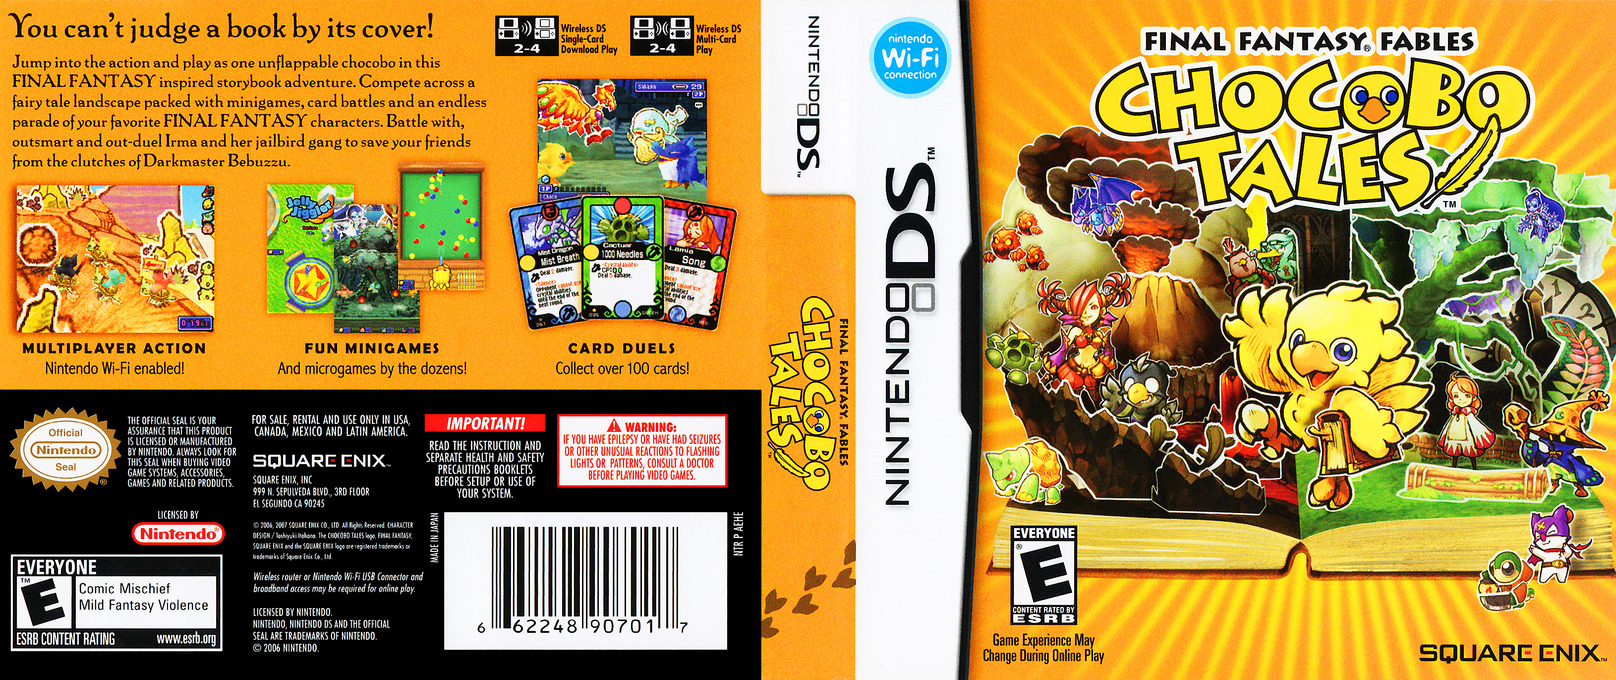 Final Fantasy Fables - Chocobo Tales DS coverfullHQ (AEHE)